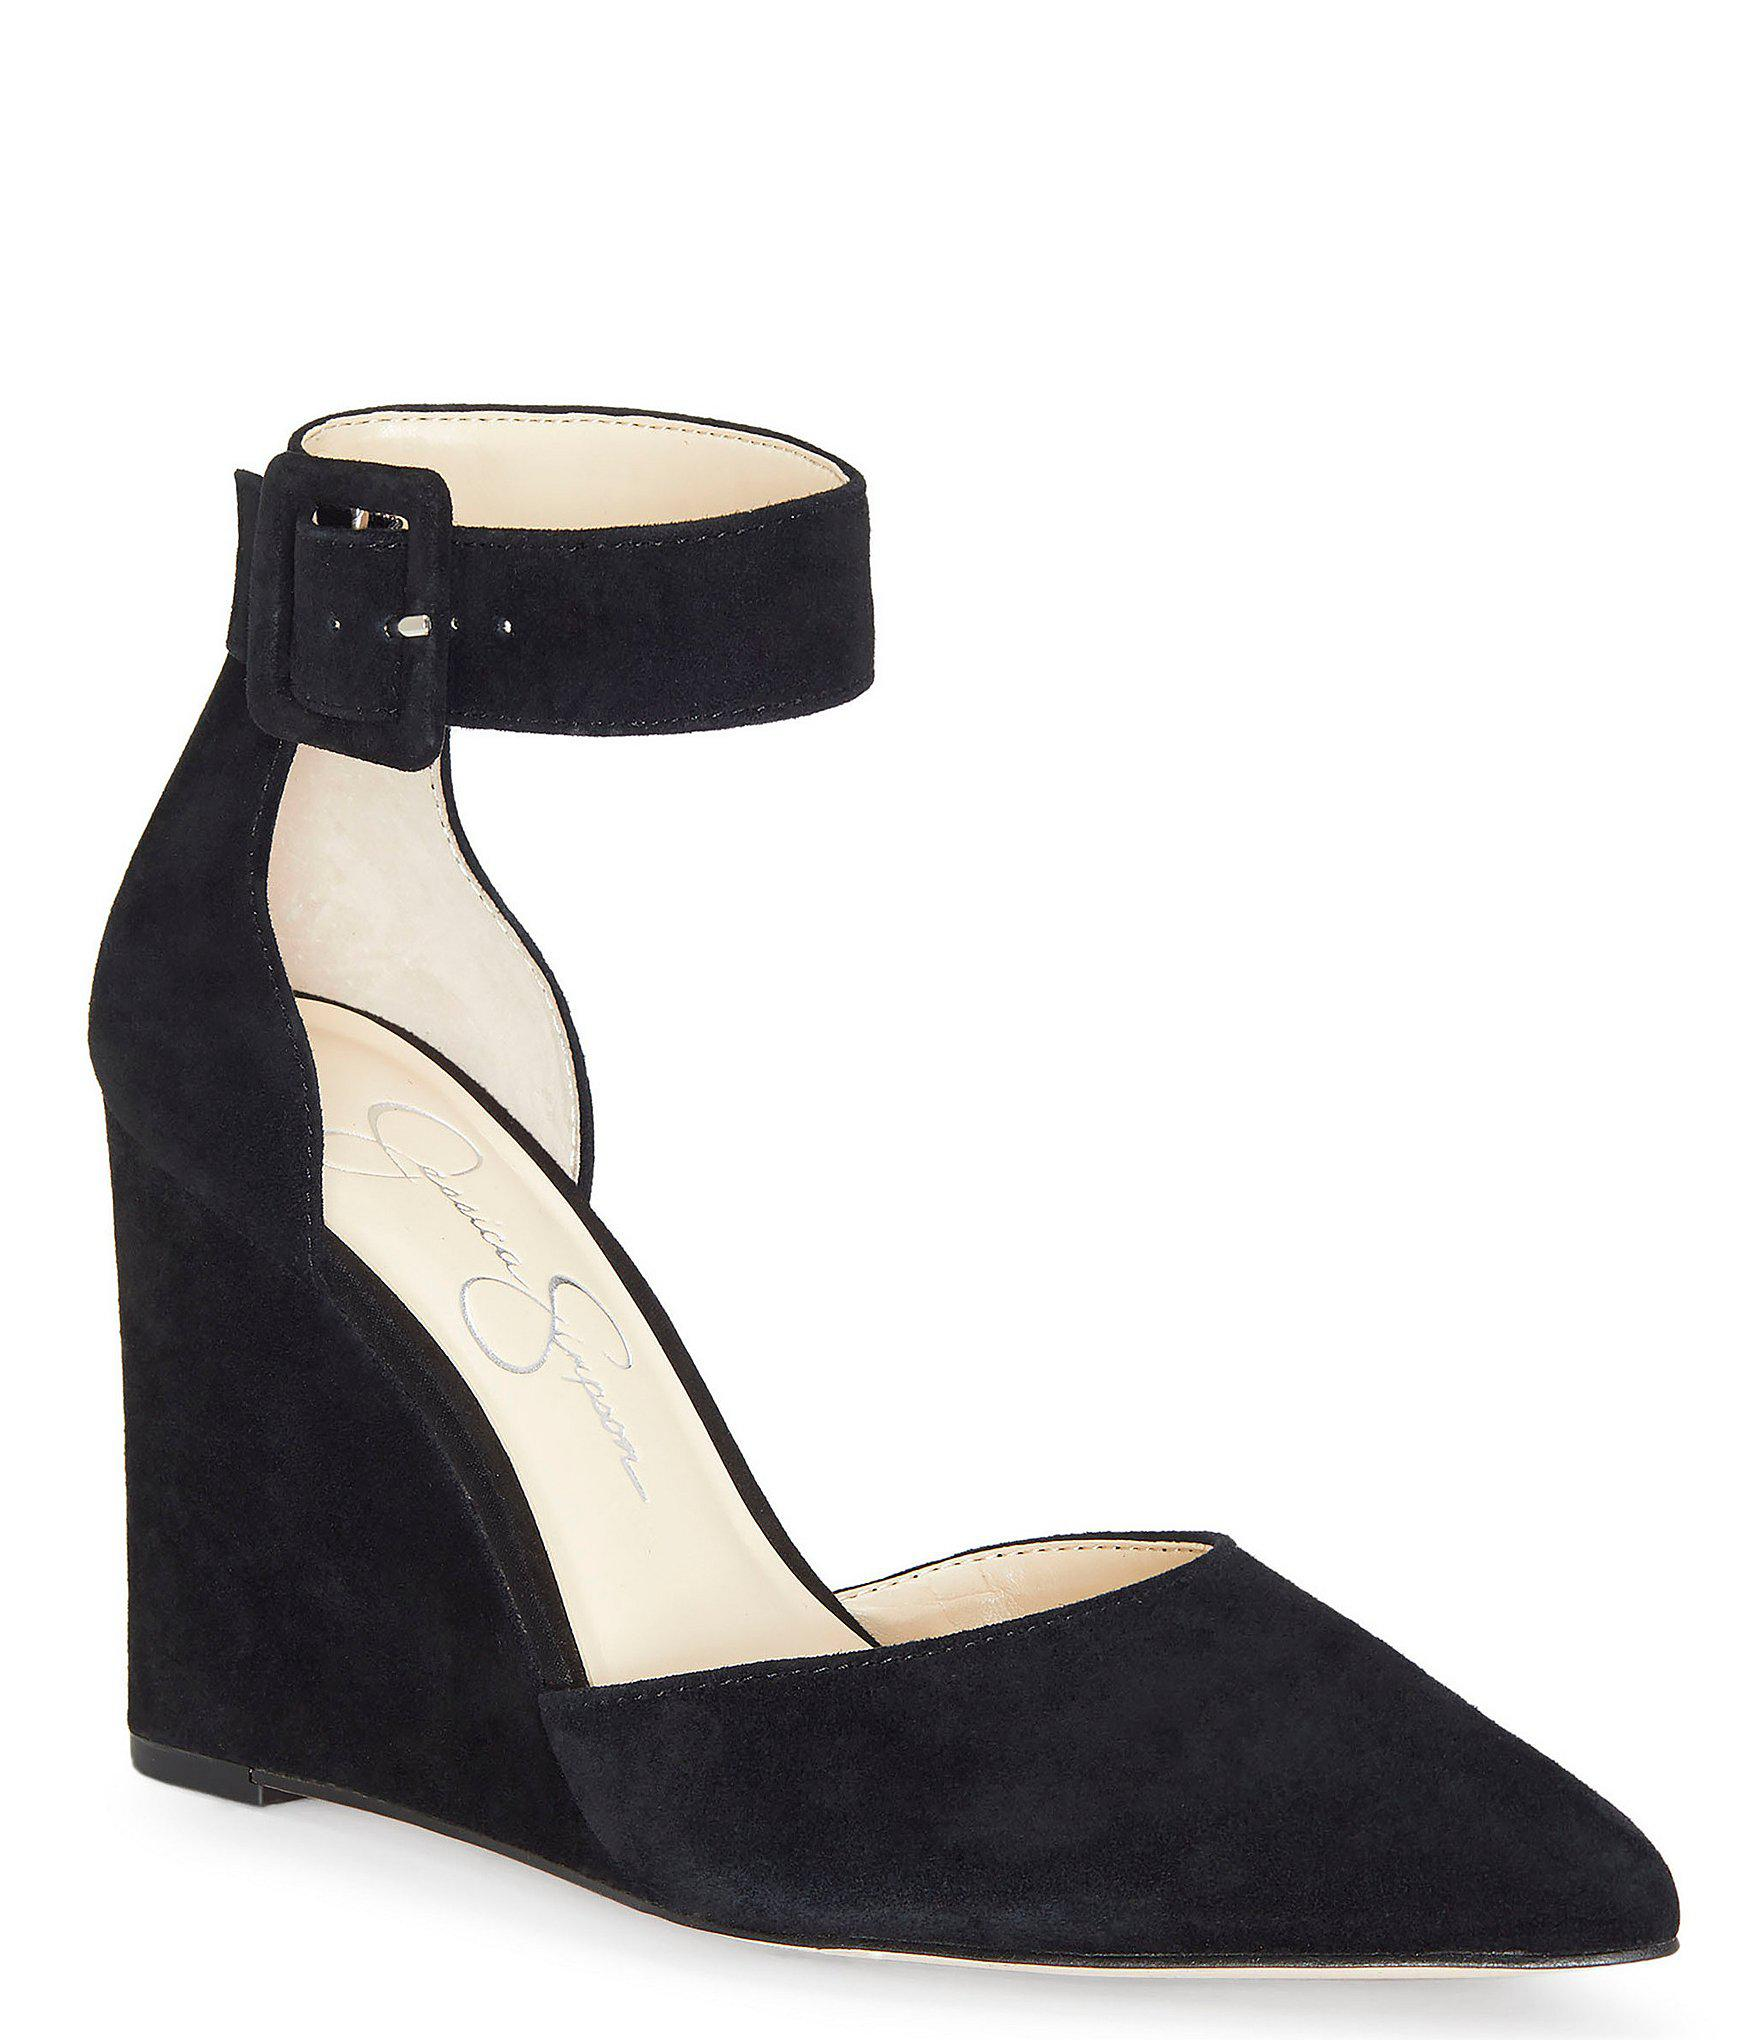 69a737c4cba9 Lyst - Jessica Simpson Moyra Suede Ankle-strap Wedges in Black